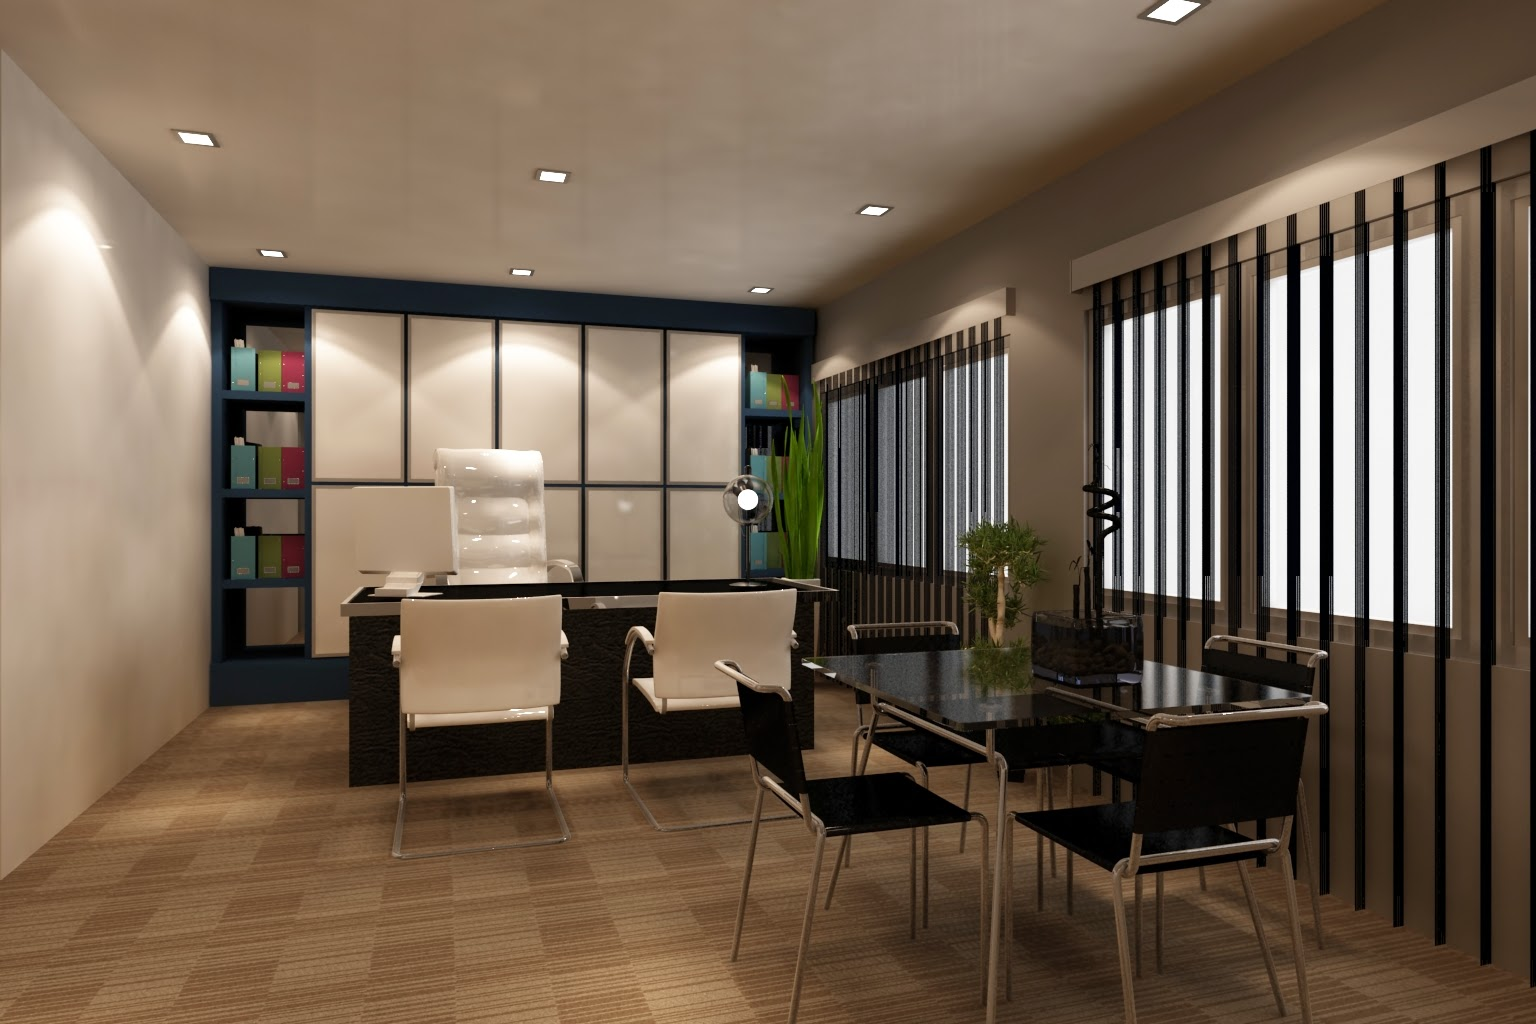 Foundation dezin decor office space in 3d model Office design 3d